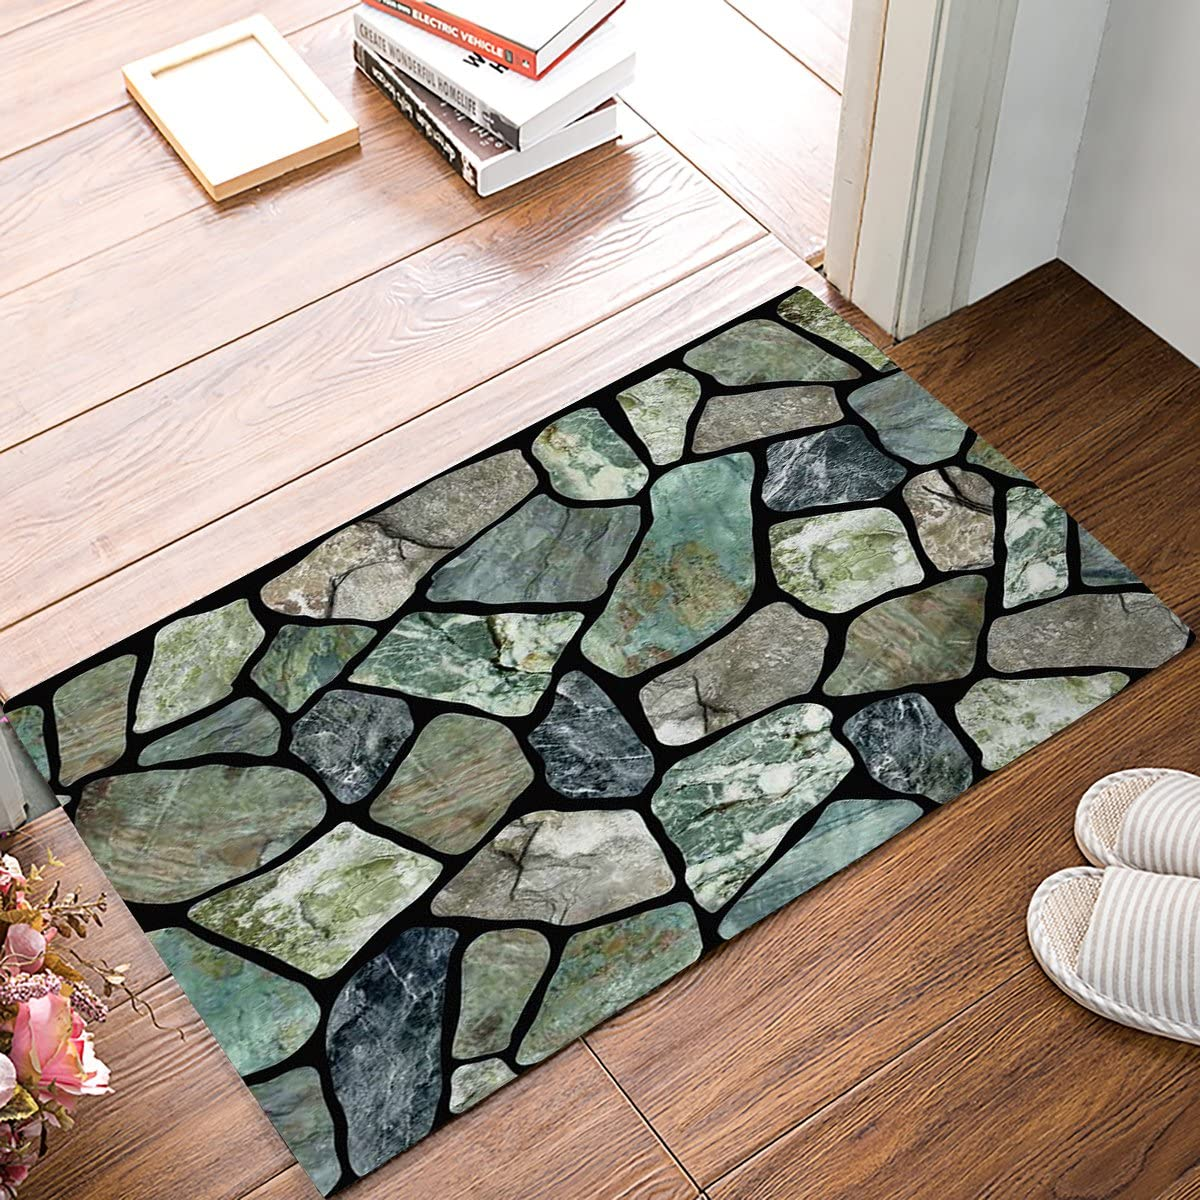 HomeCreator 32 x 20 Inch Flagstone Green Grey Marble Stone Door Mats Kitchen Floor Bath Entryway Rug Mat Absorbent Indoor Bathroom Decor Doormats Rubber Non Slip